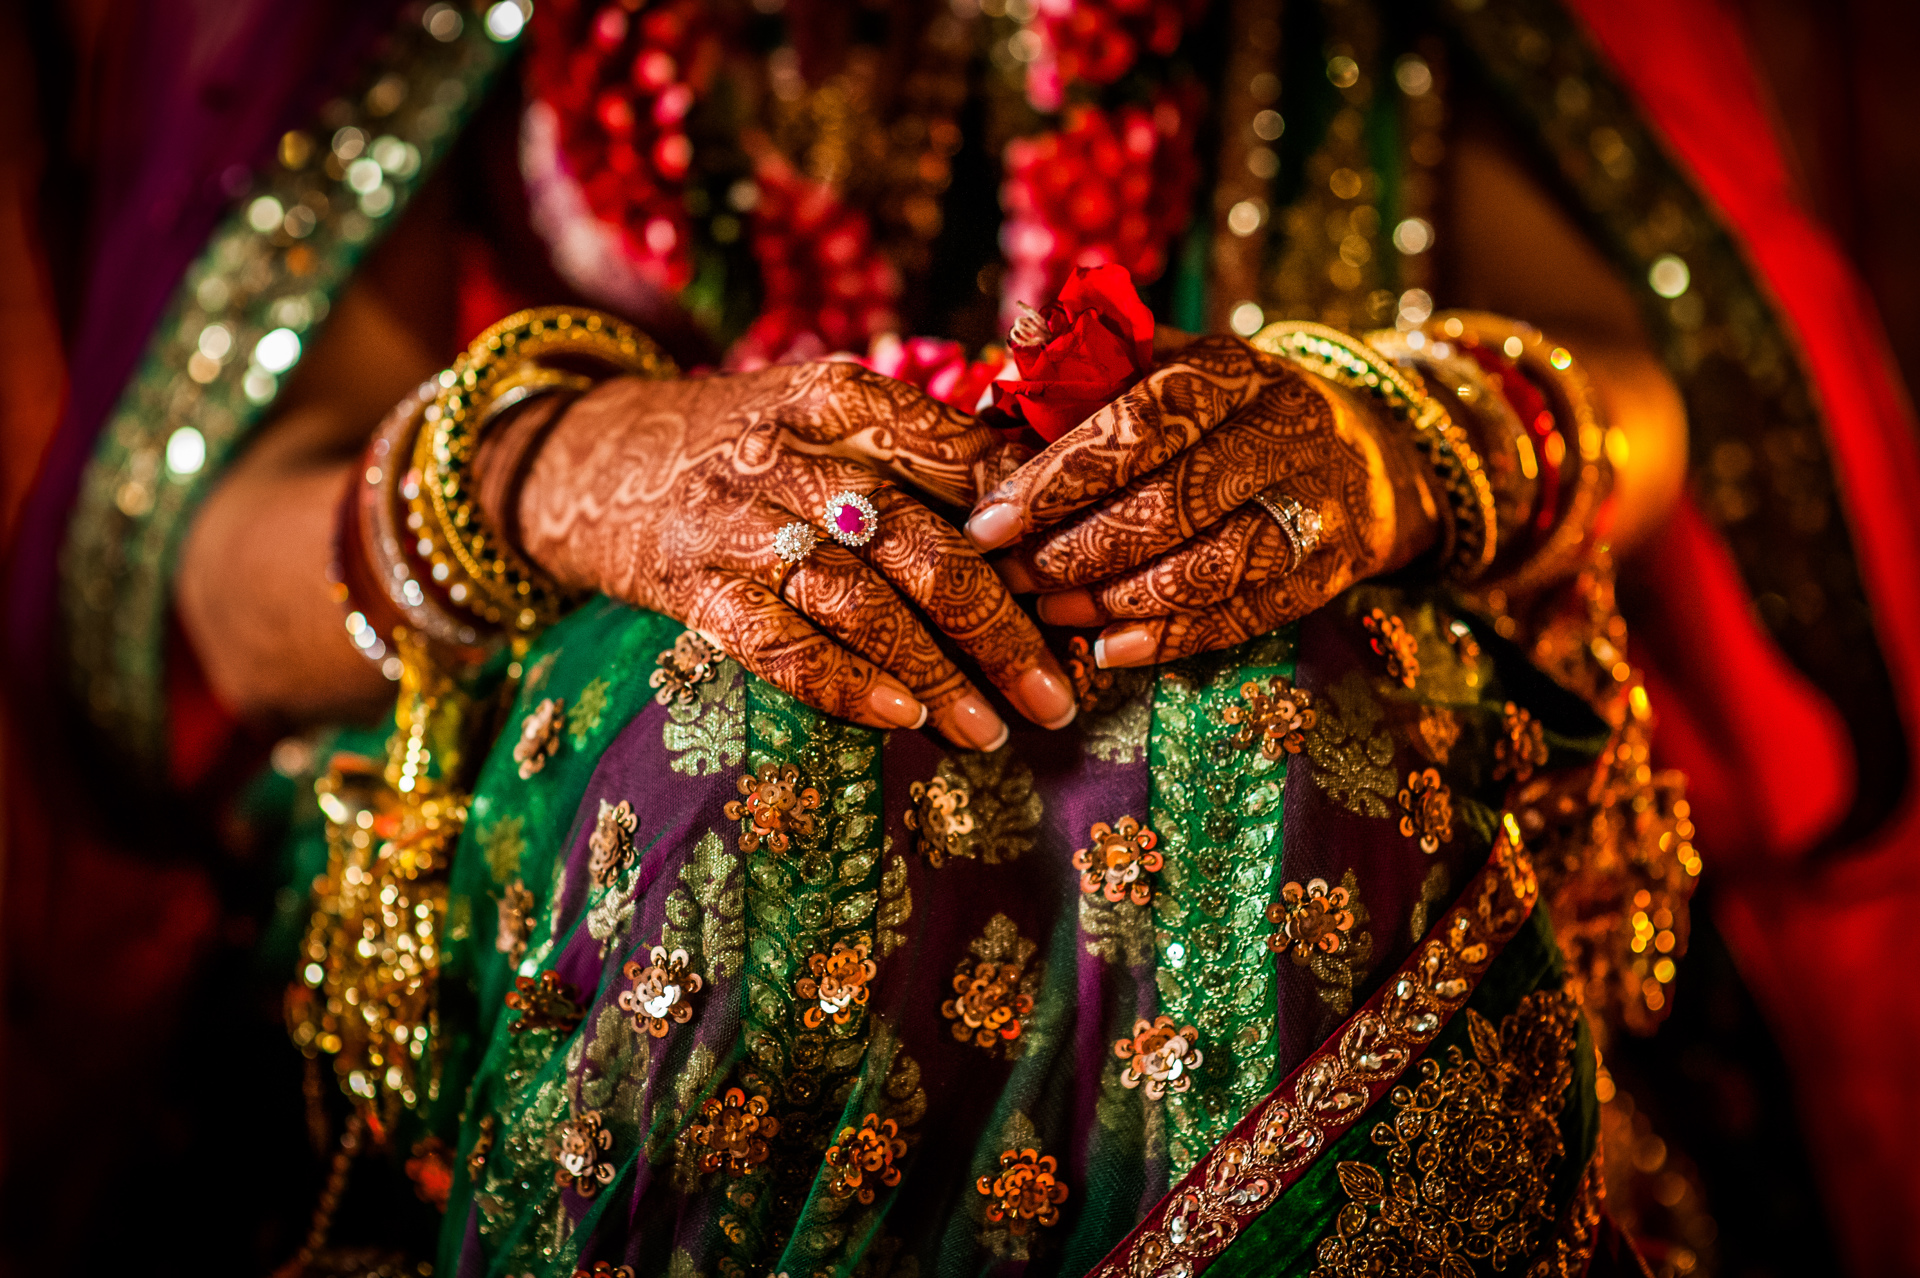 Intricate Indian henna on bride's hands - photo by Sephi Bergerson